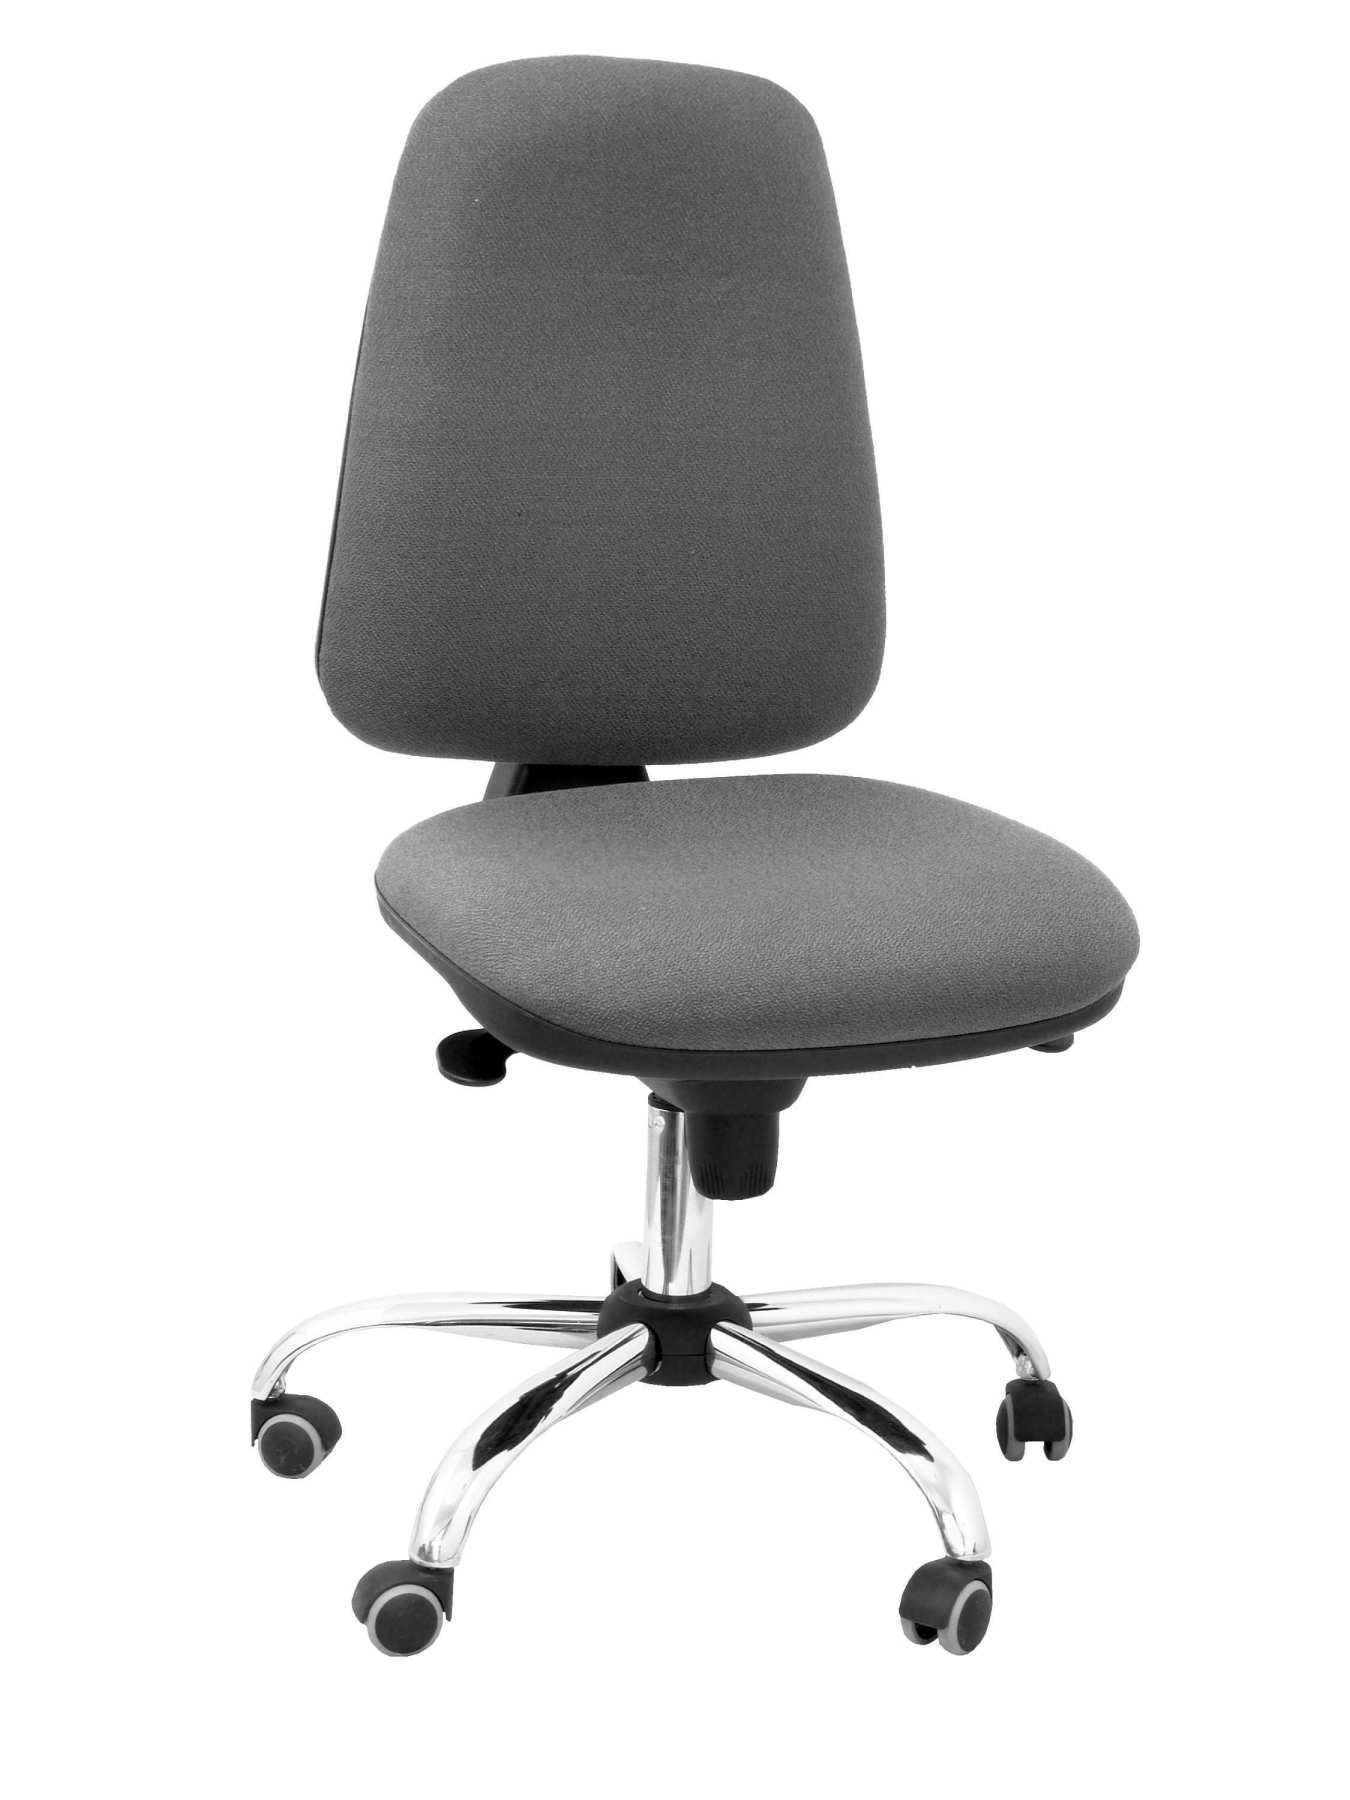 Ergonomic Office Chair With Mechanism Synchro And Height Adjustable Seat And Fabric Upholstered In Fabric BALI Color